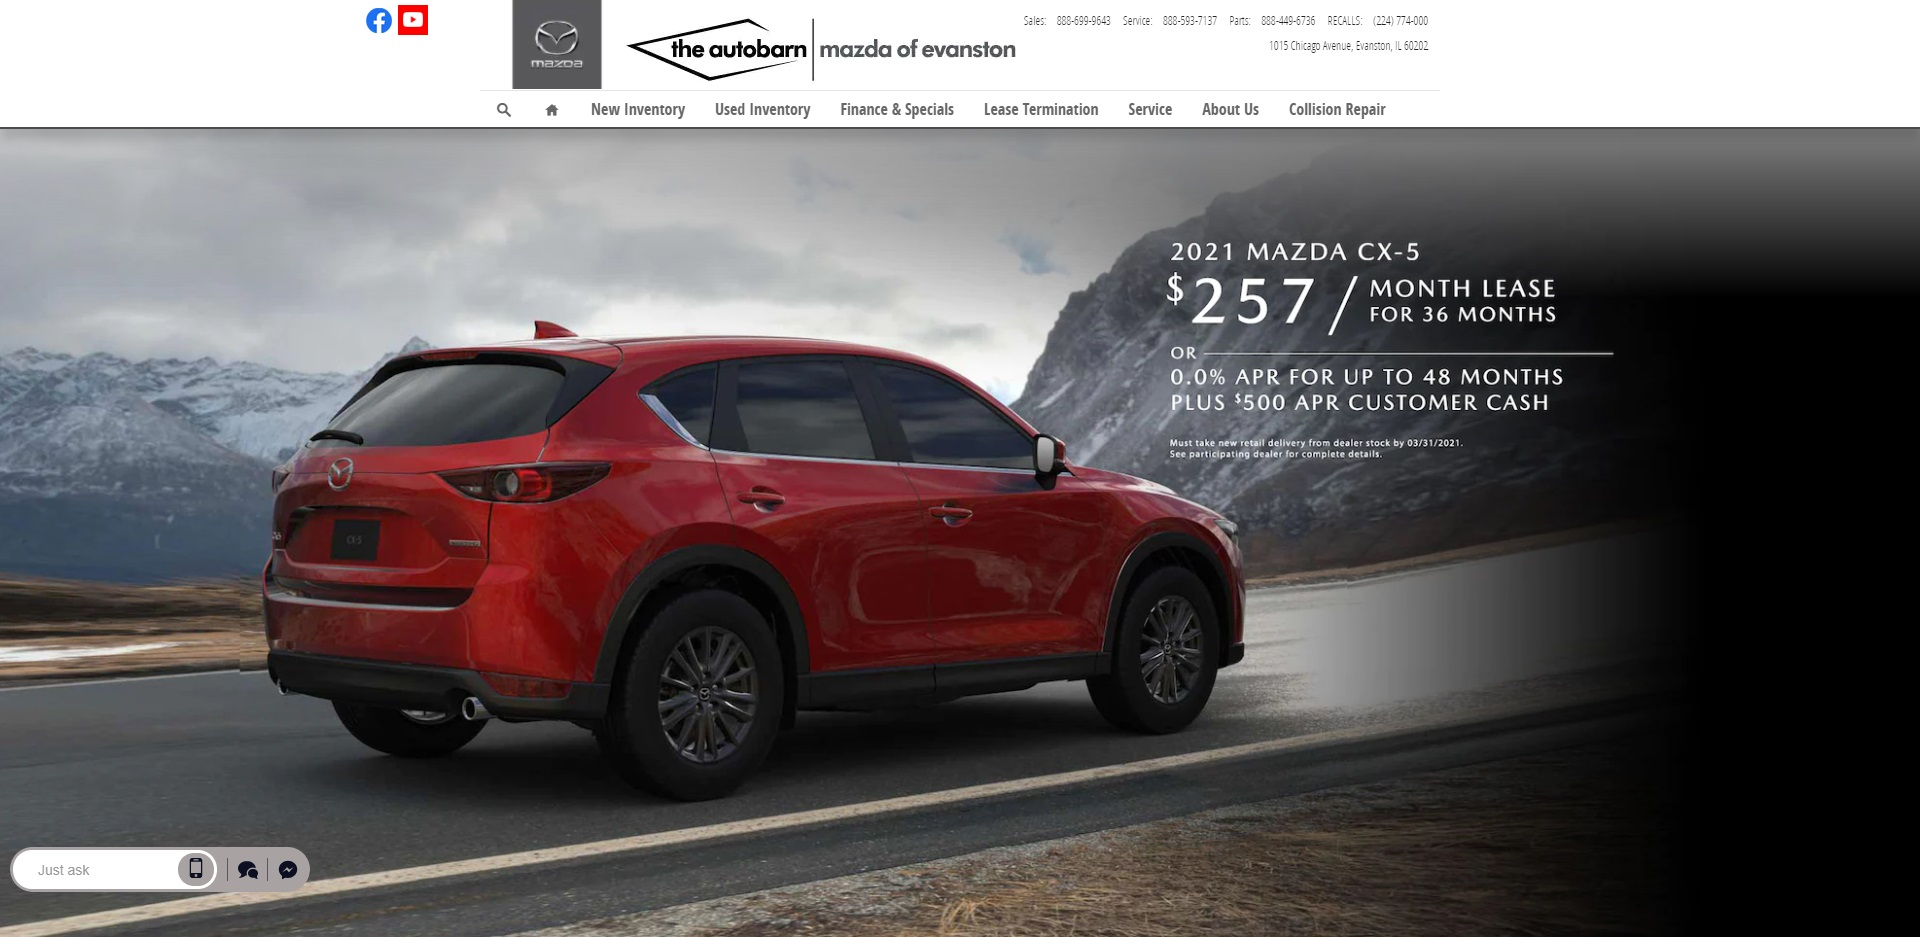 The Best Mazda Dealers in Chicago